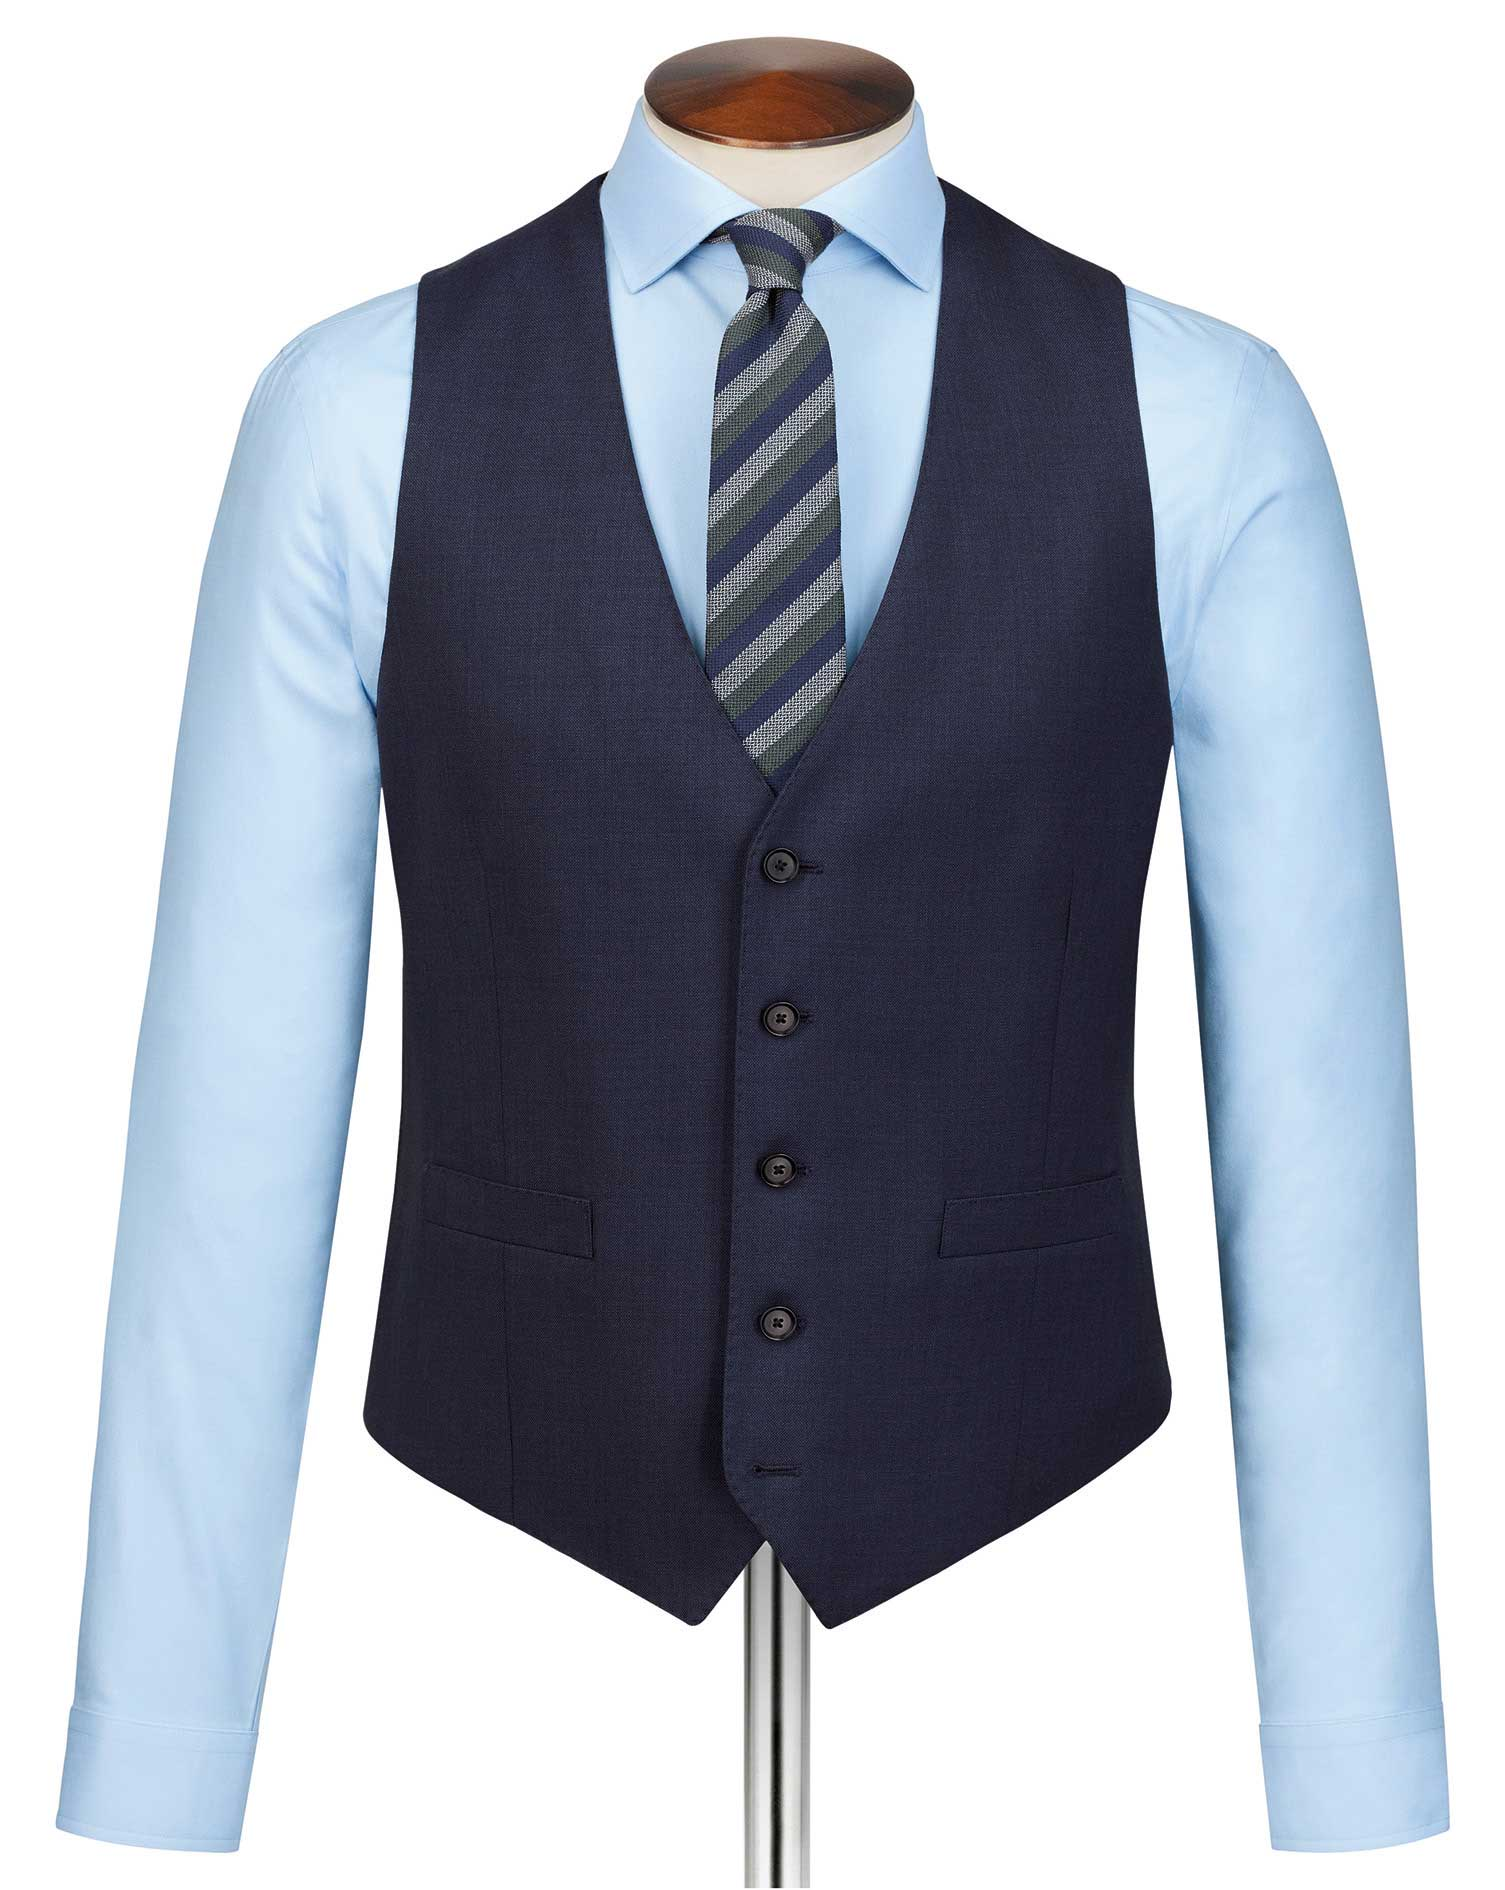 Navy slim fit sharkskin travel suit waistcoat